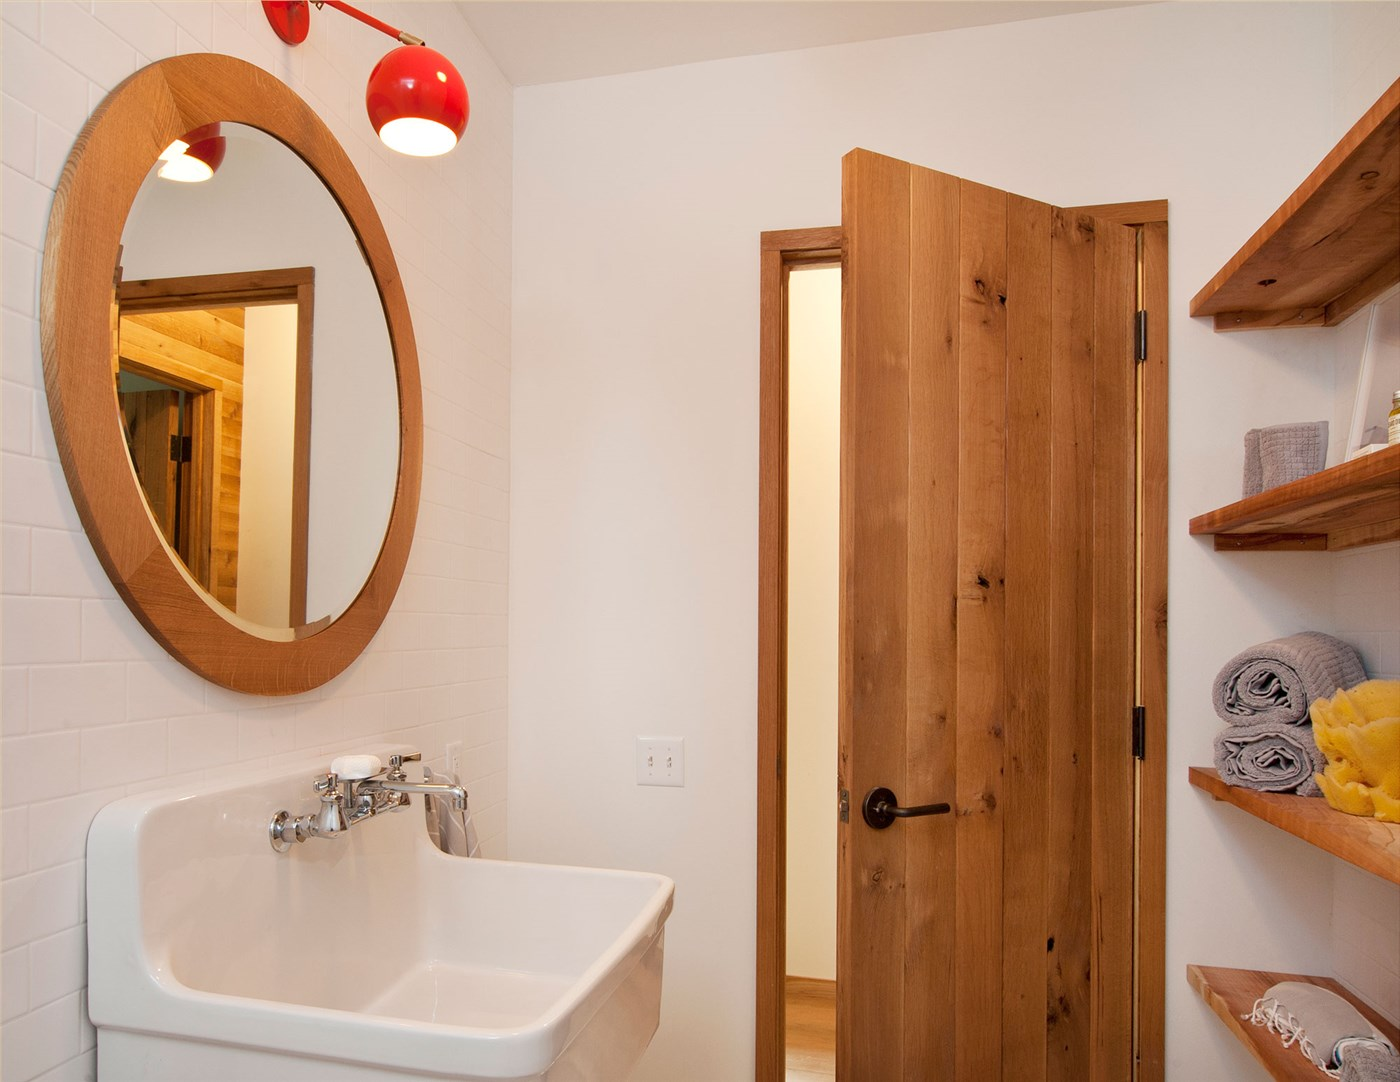 wood shelves, mirror and door, bathroom design ideas